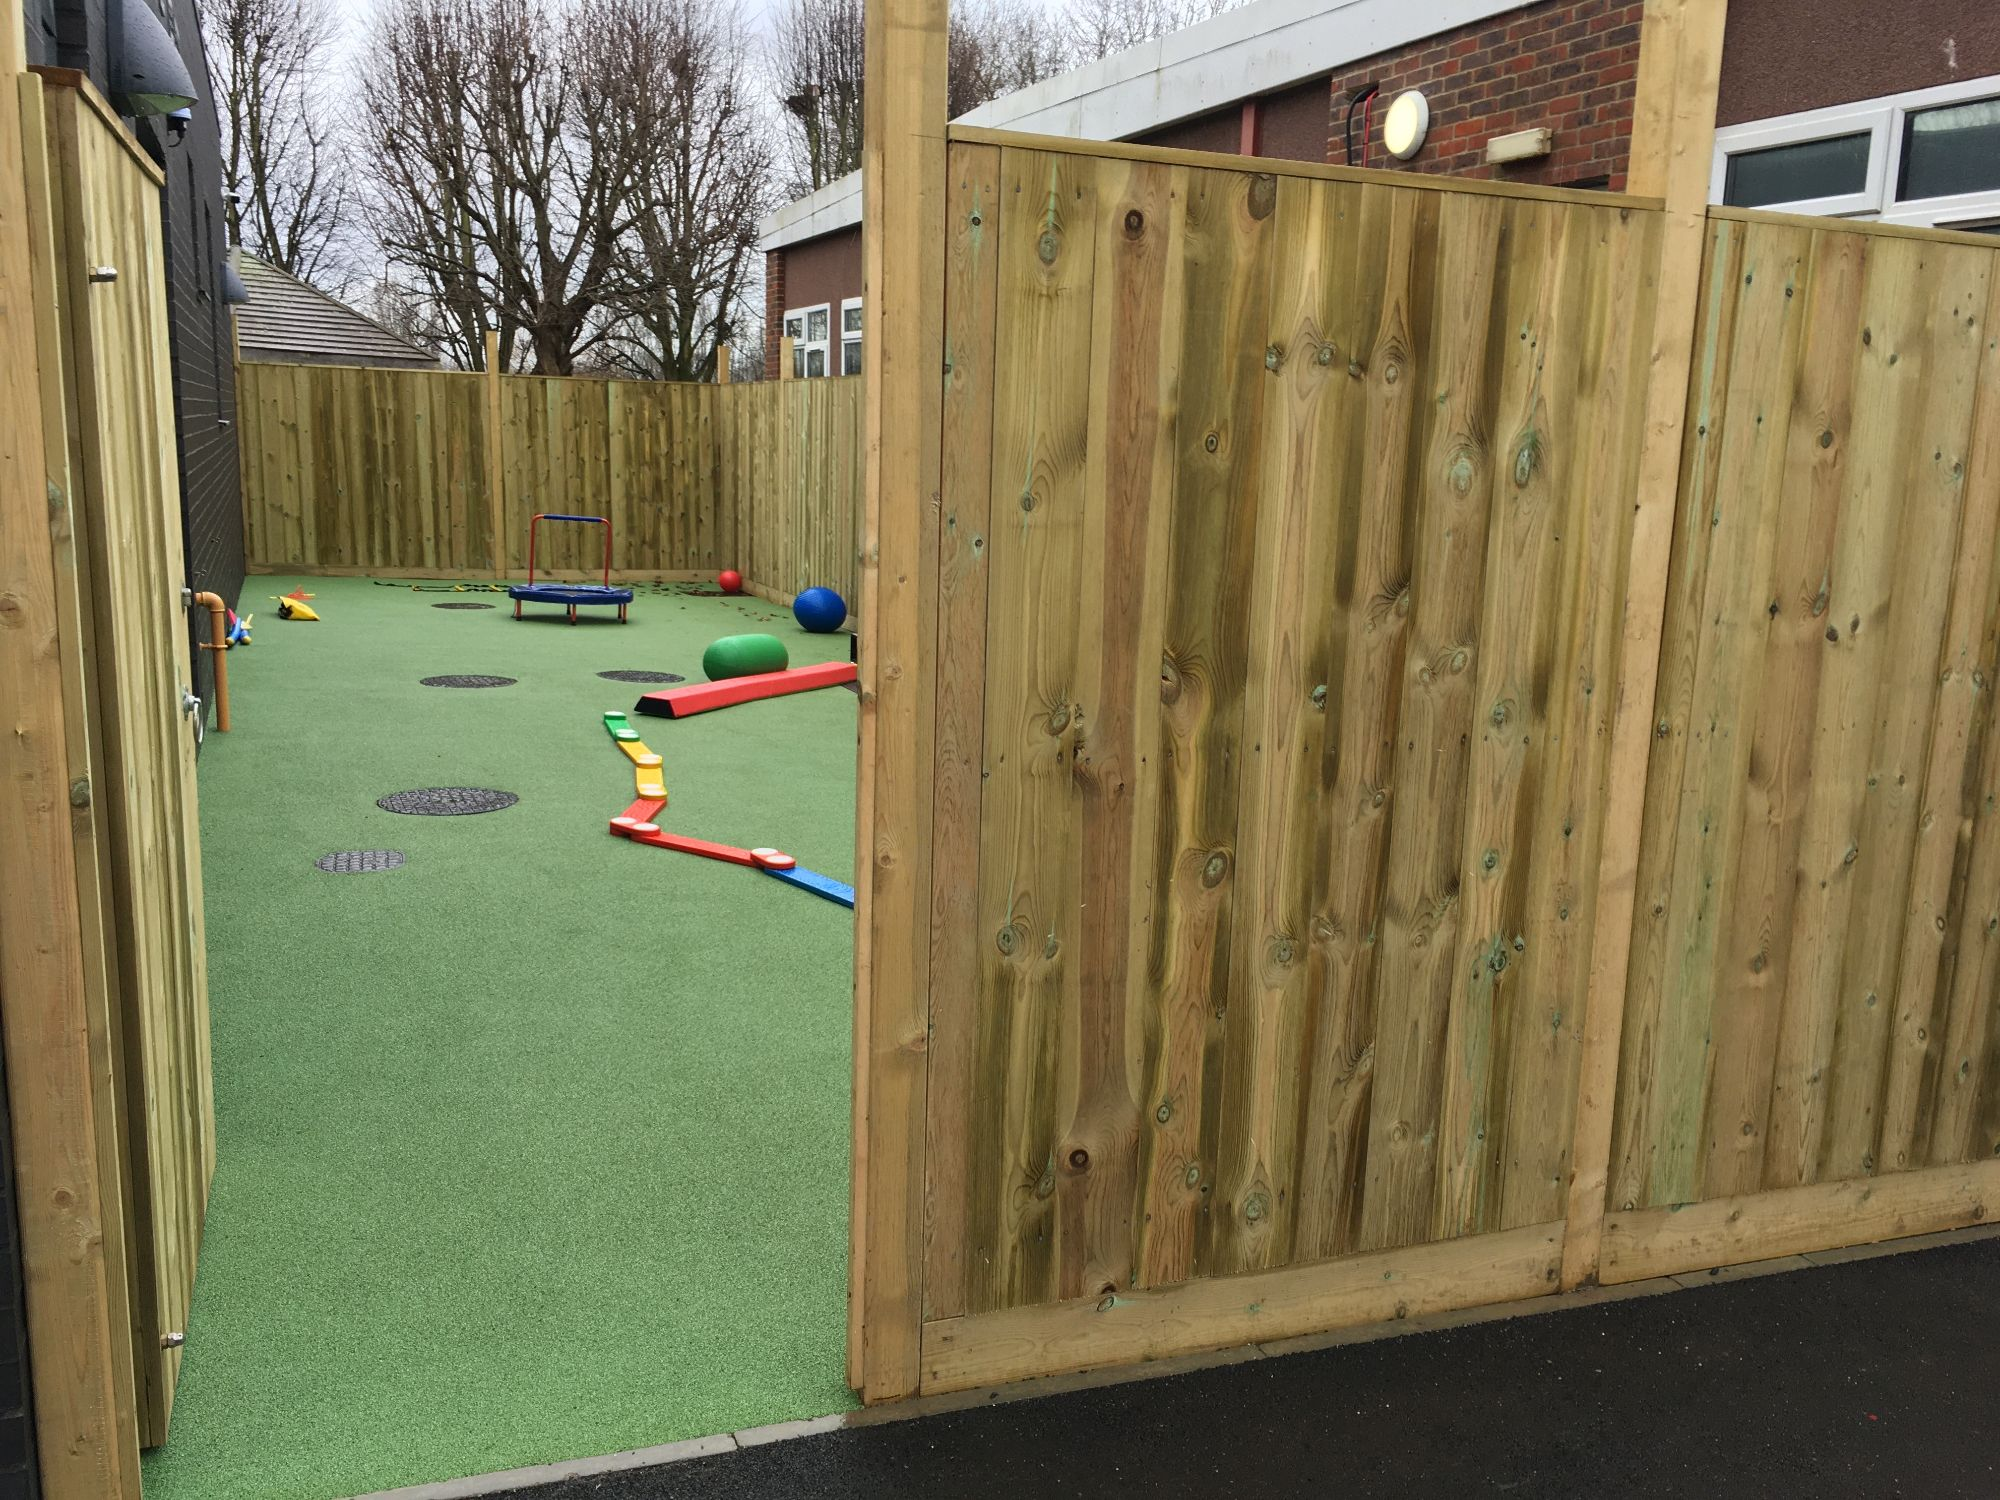 New Autism Facility – Outdoor Space